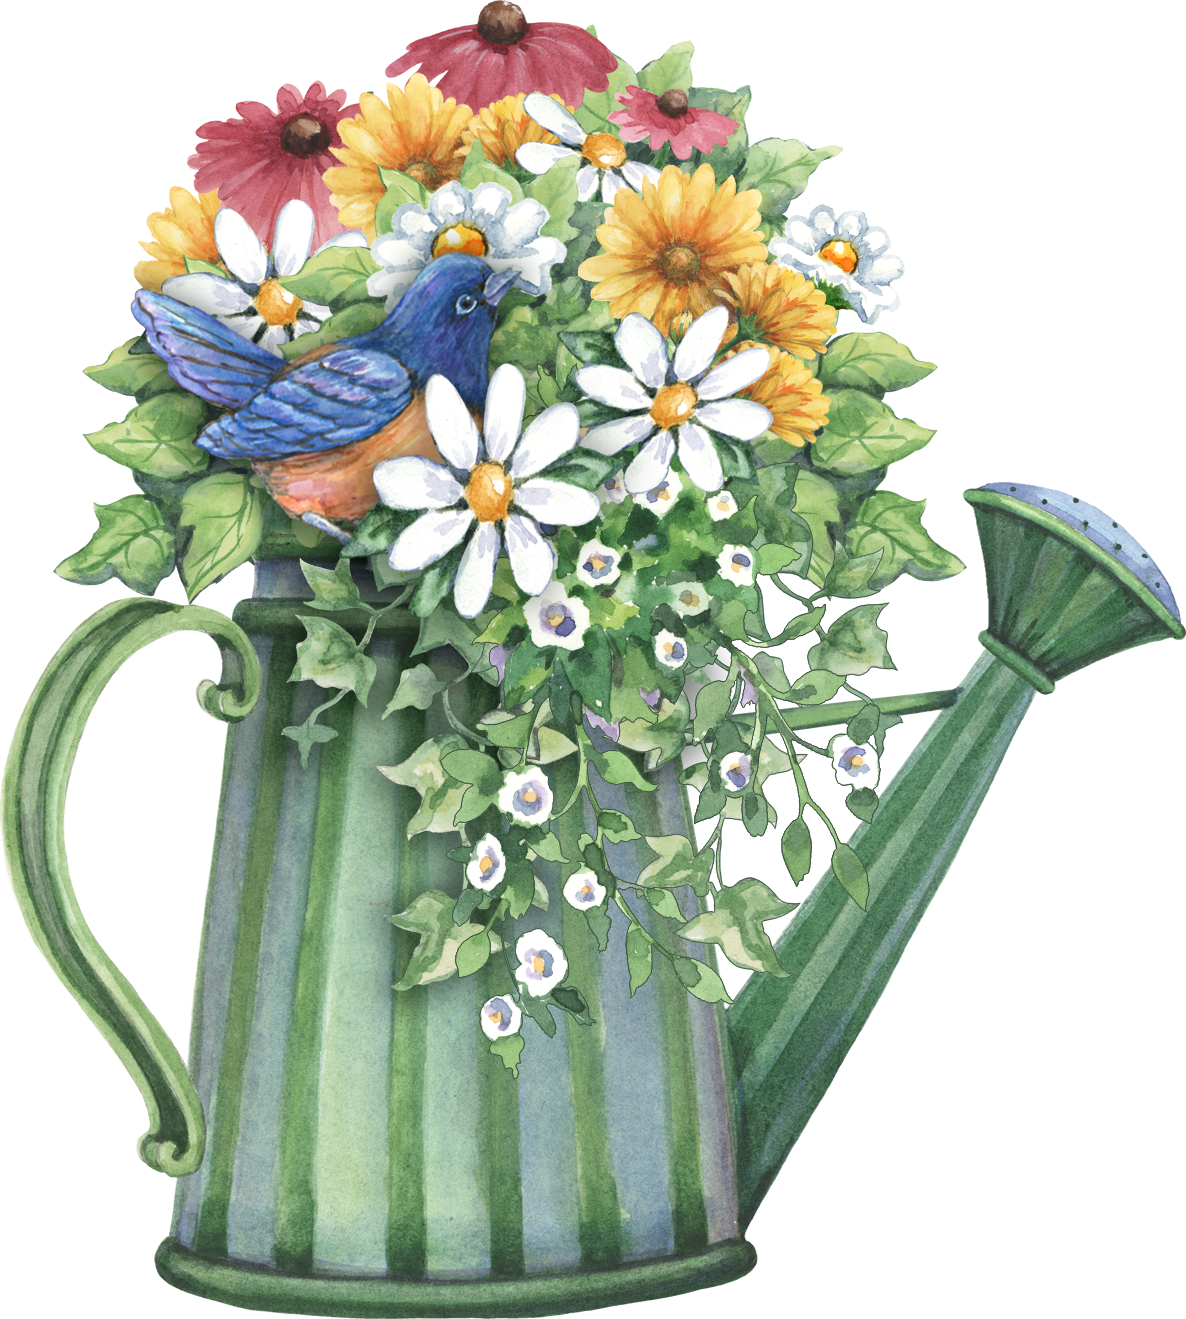 Vase vector victorian flower. Watering can full of